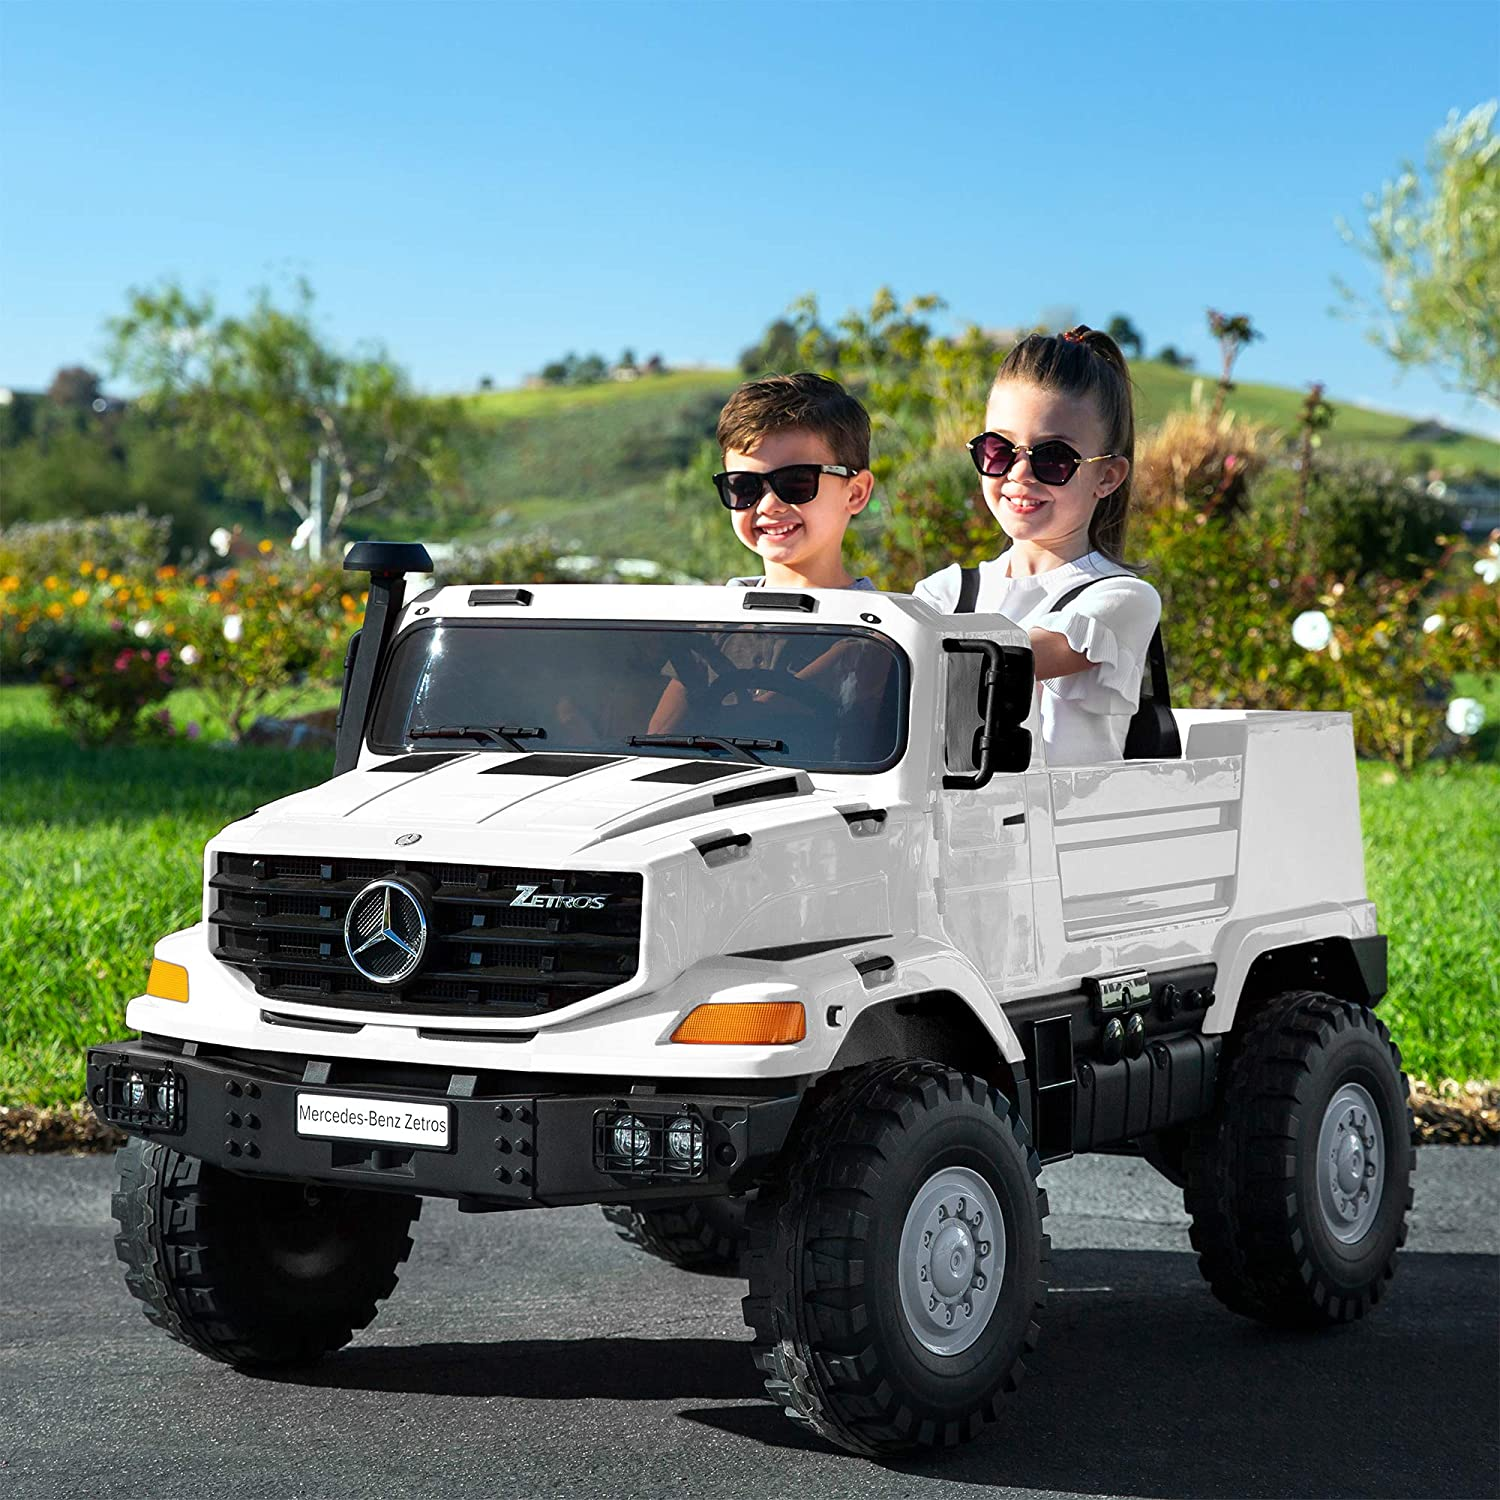 24v Kids Ride on Toy SUV Battery Operated Tr